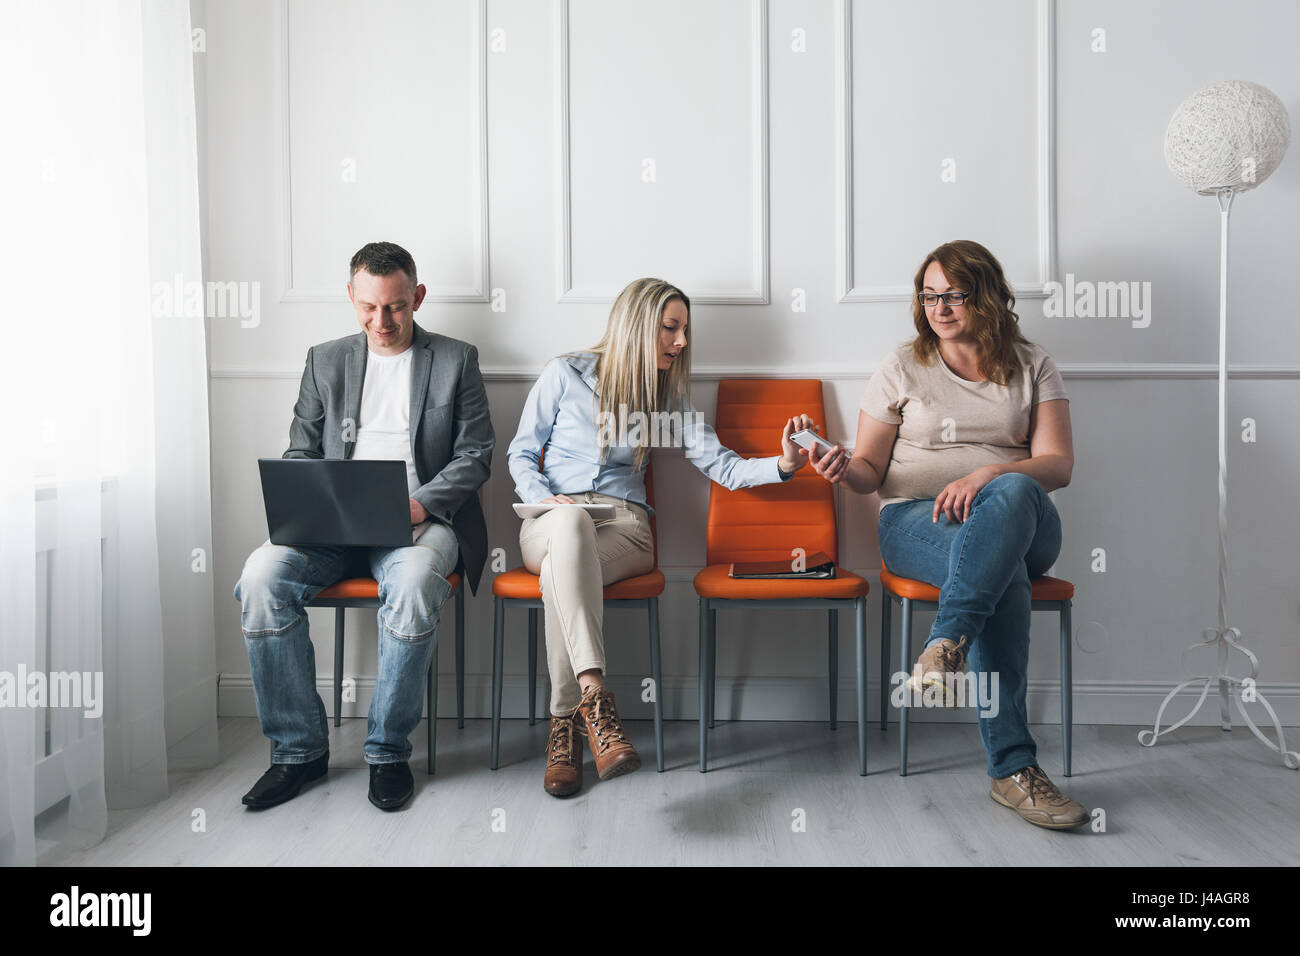 Group of young creative people sitting on chairs in waiting room Stock Photo